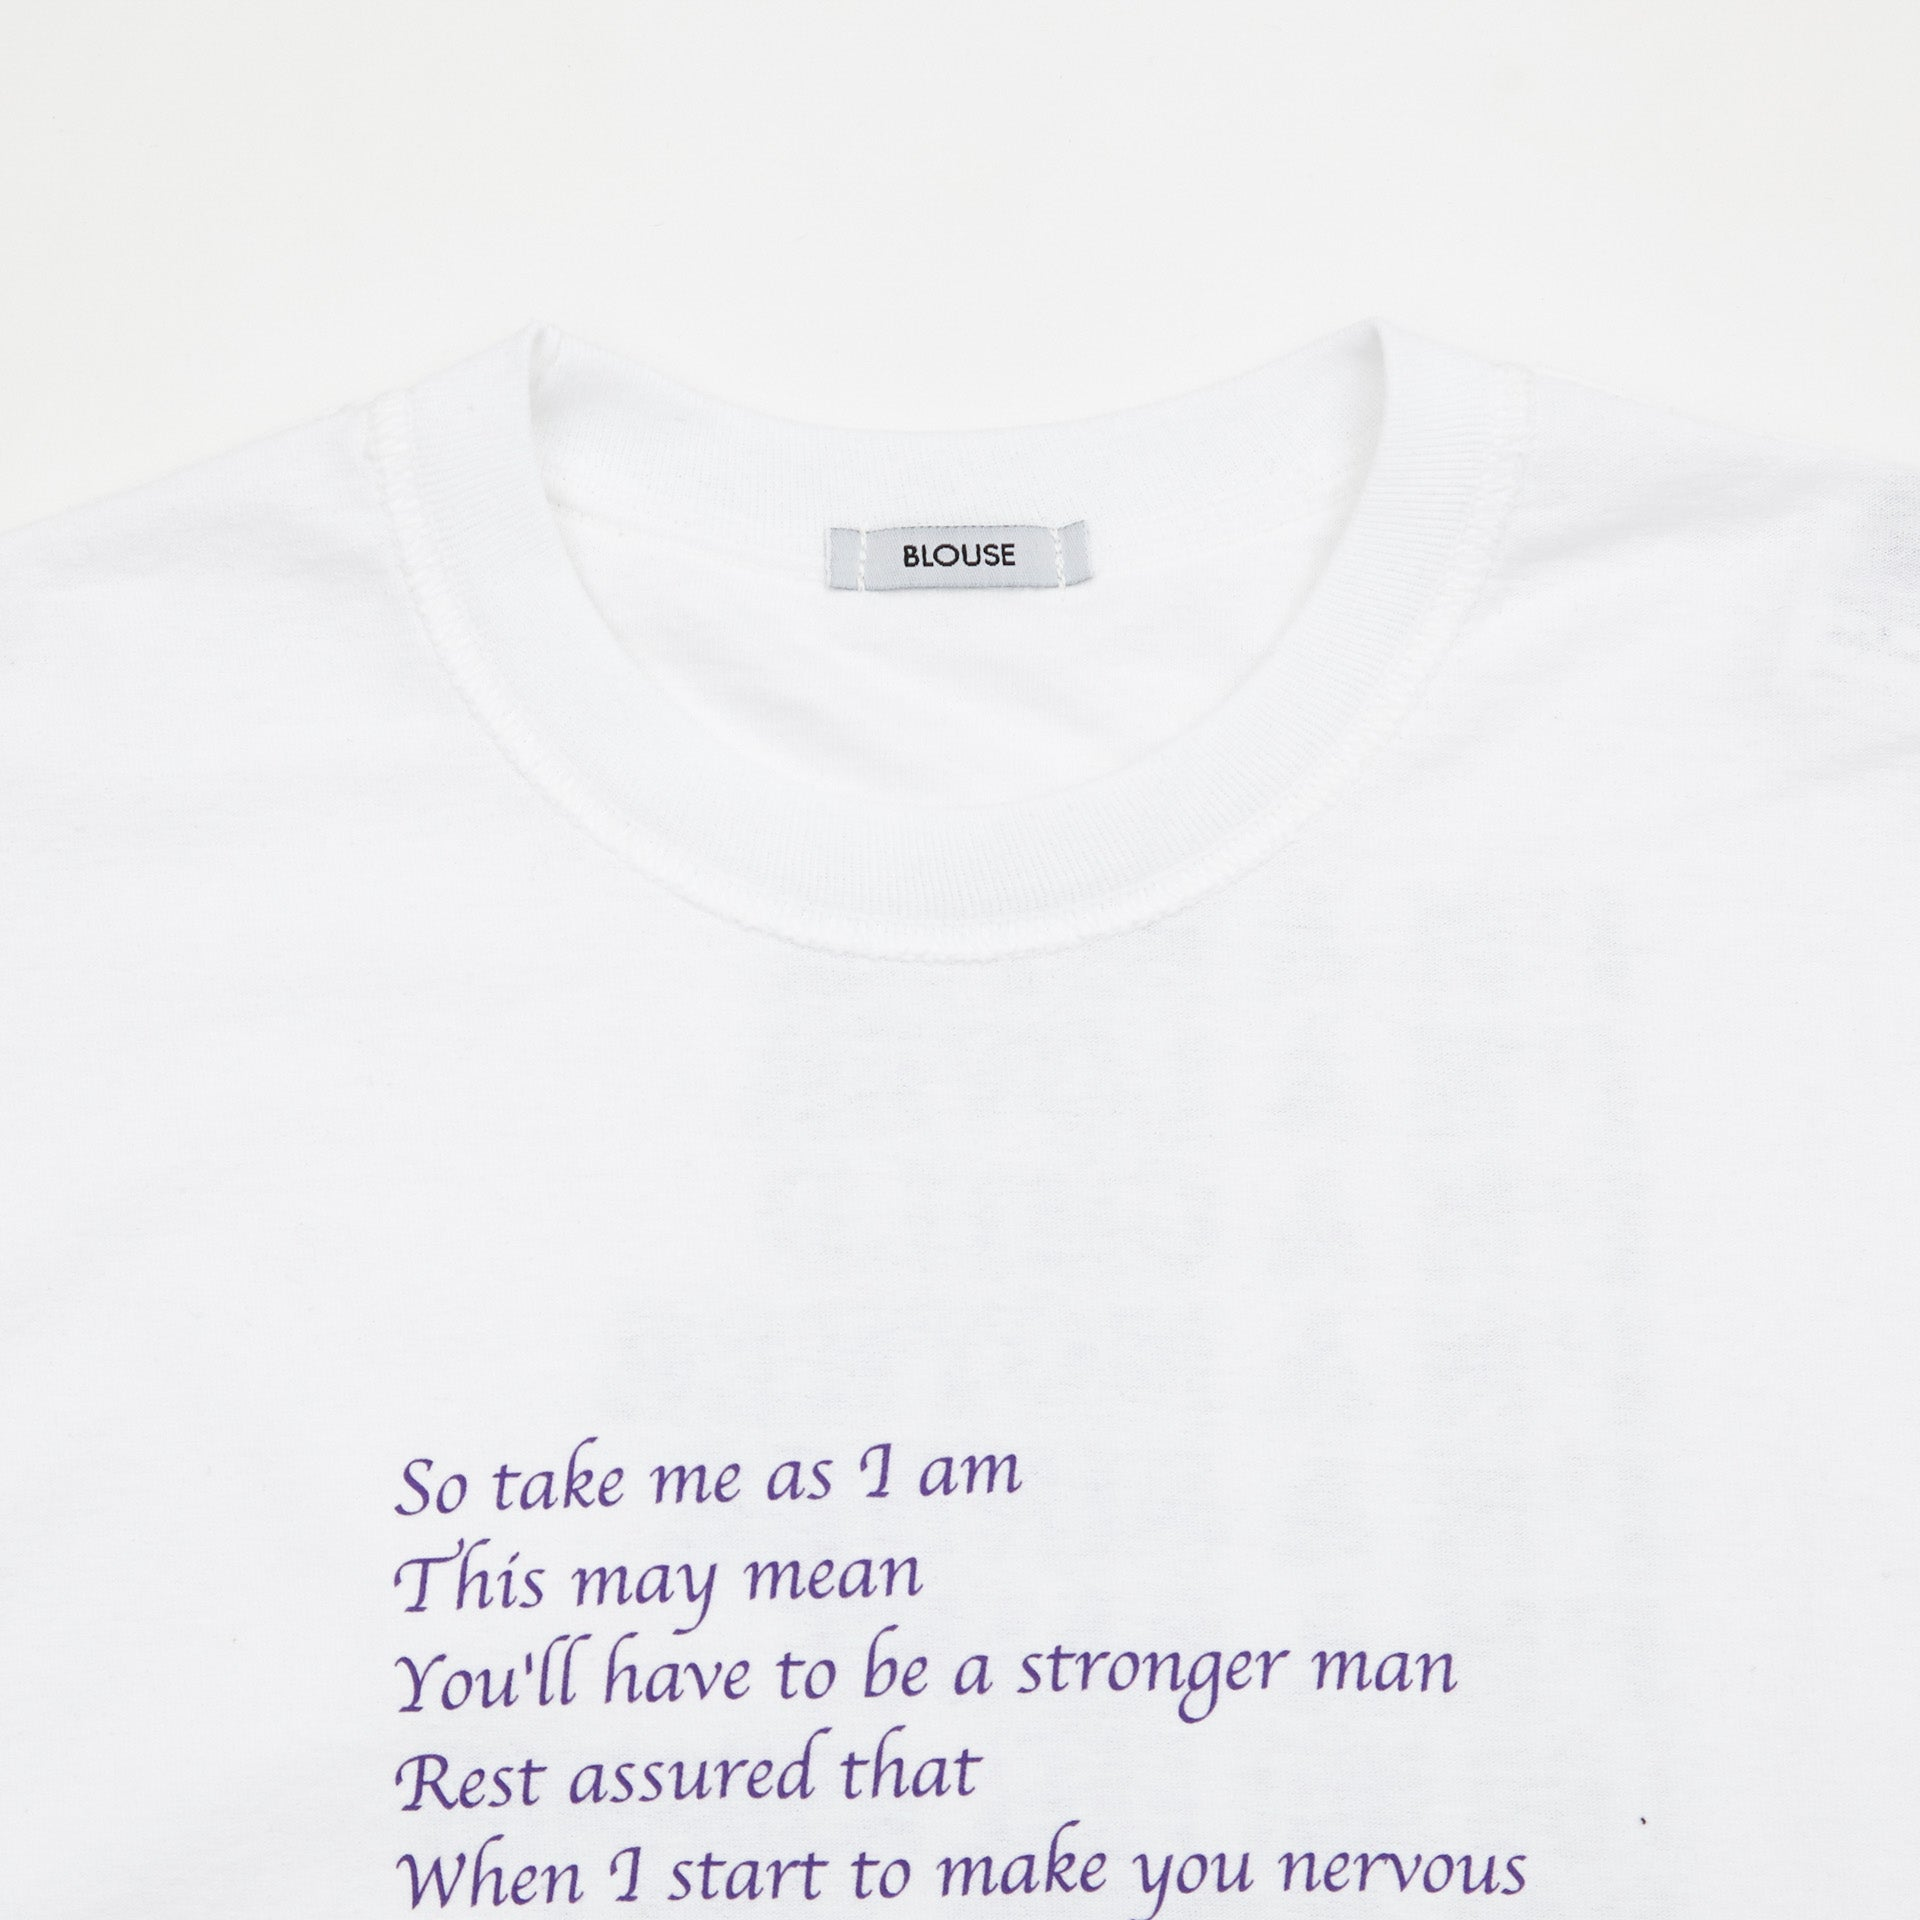 BLOUSE Bitch Long Sleeve Tee 'So take me as I am...' Front Print